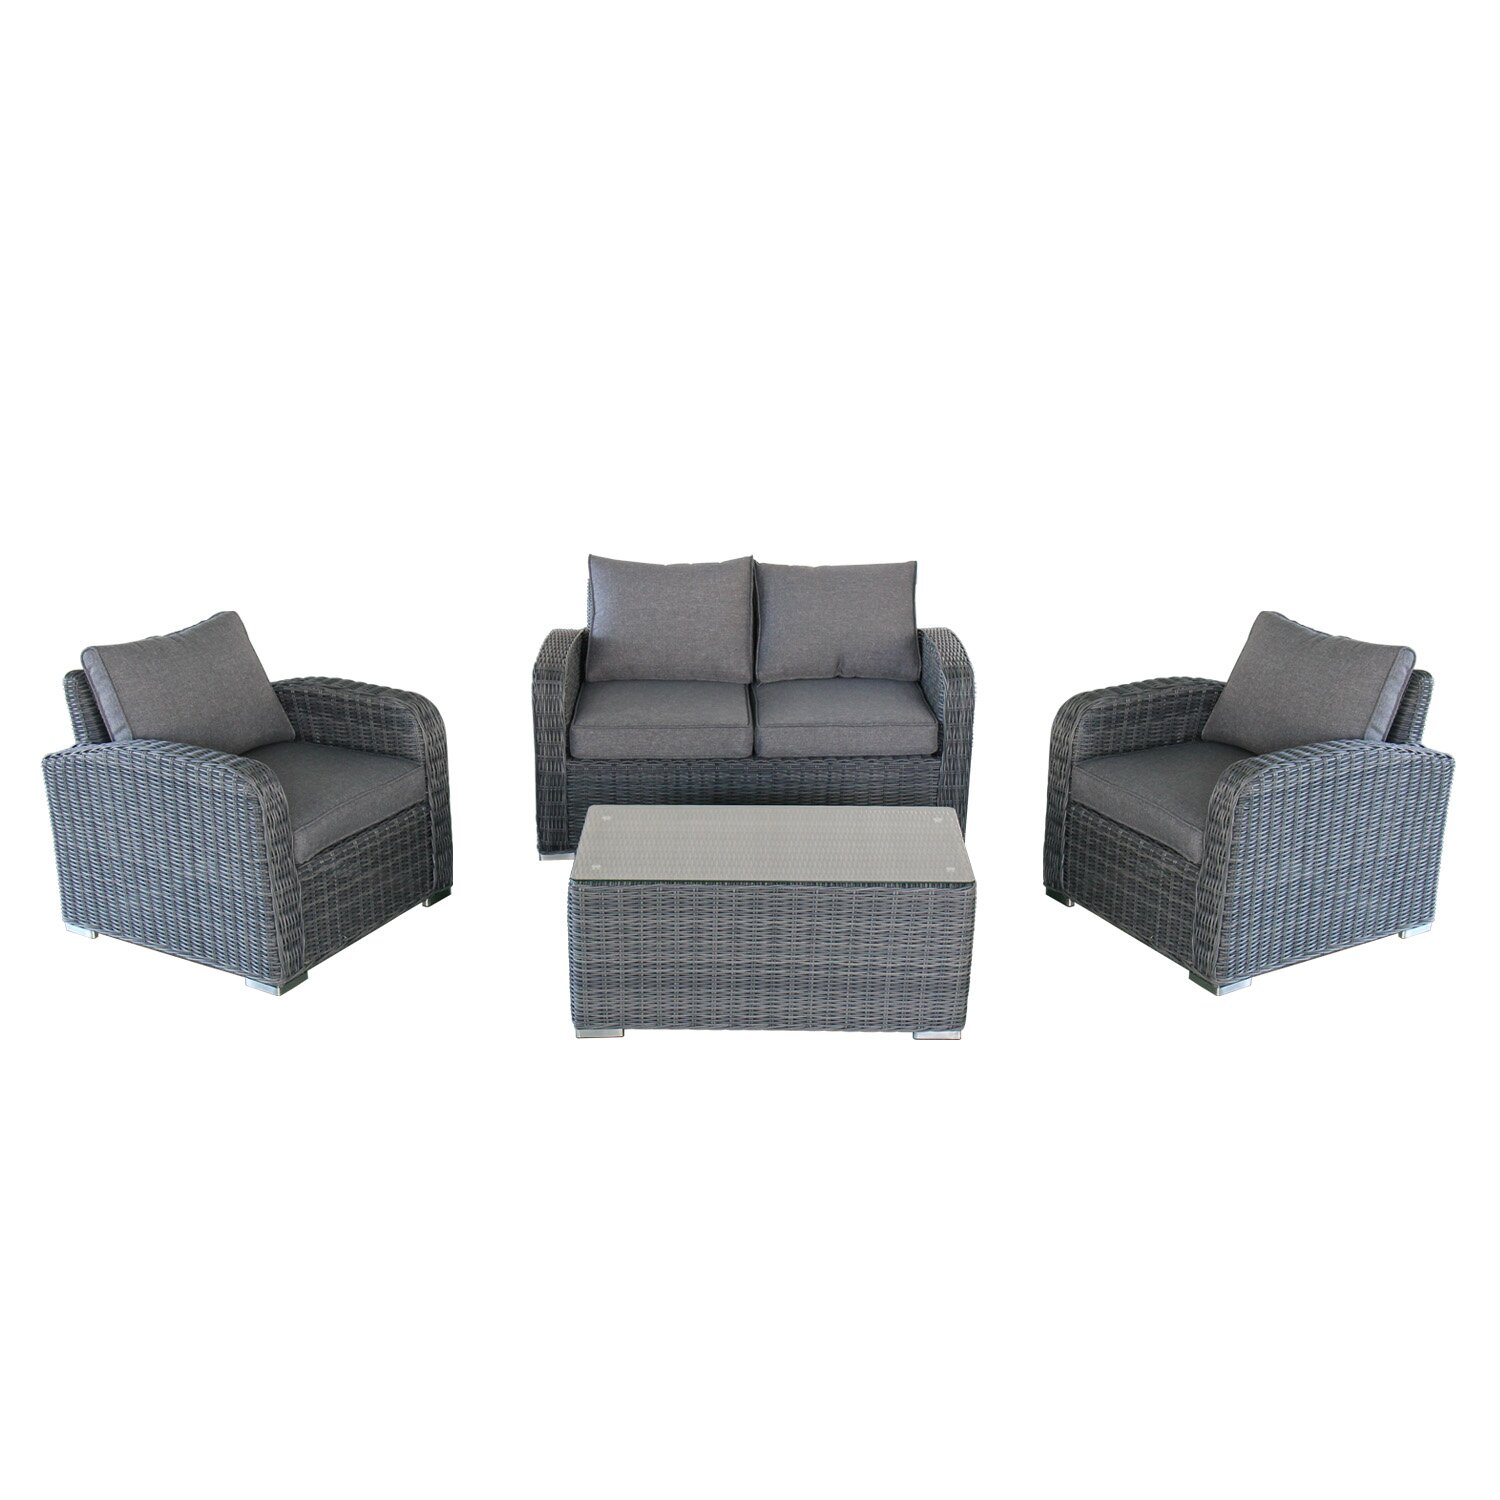 Magari outdoor furniture complete 4 piece deep seating for Outdoor furniture 4 piece